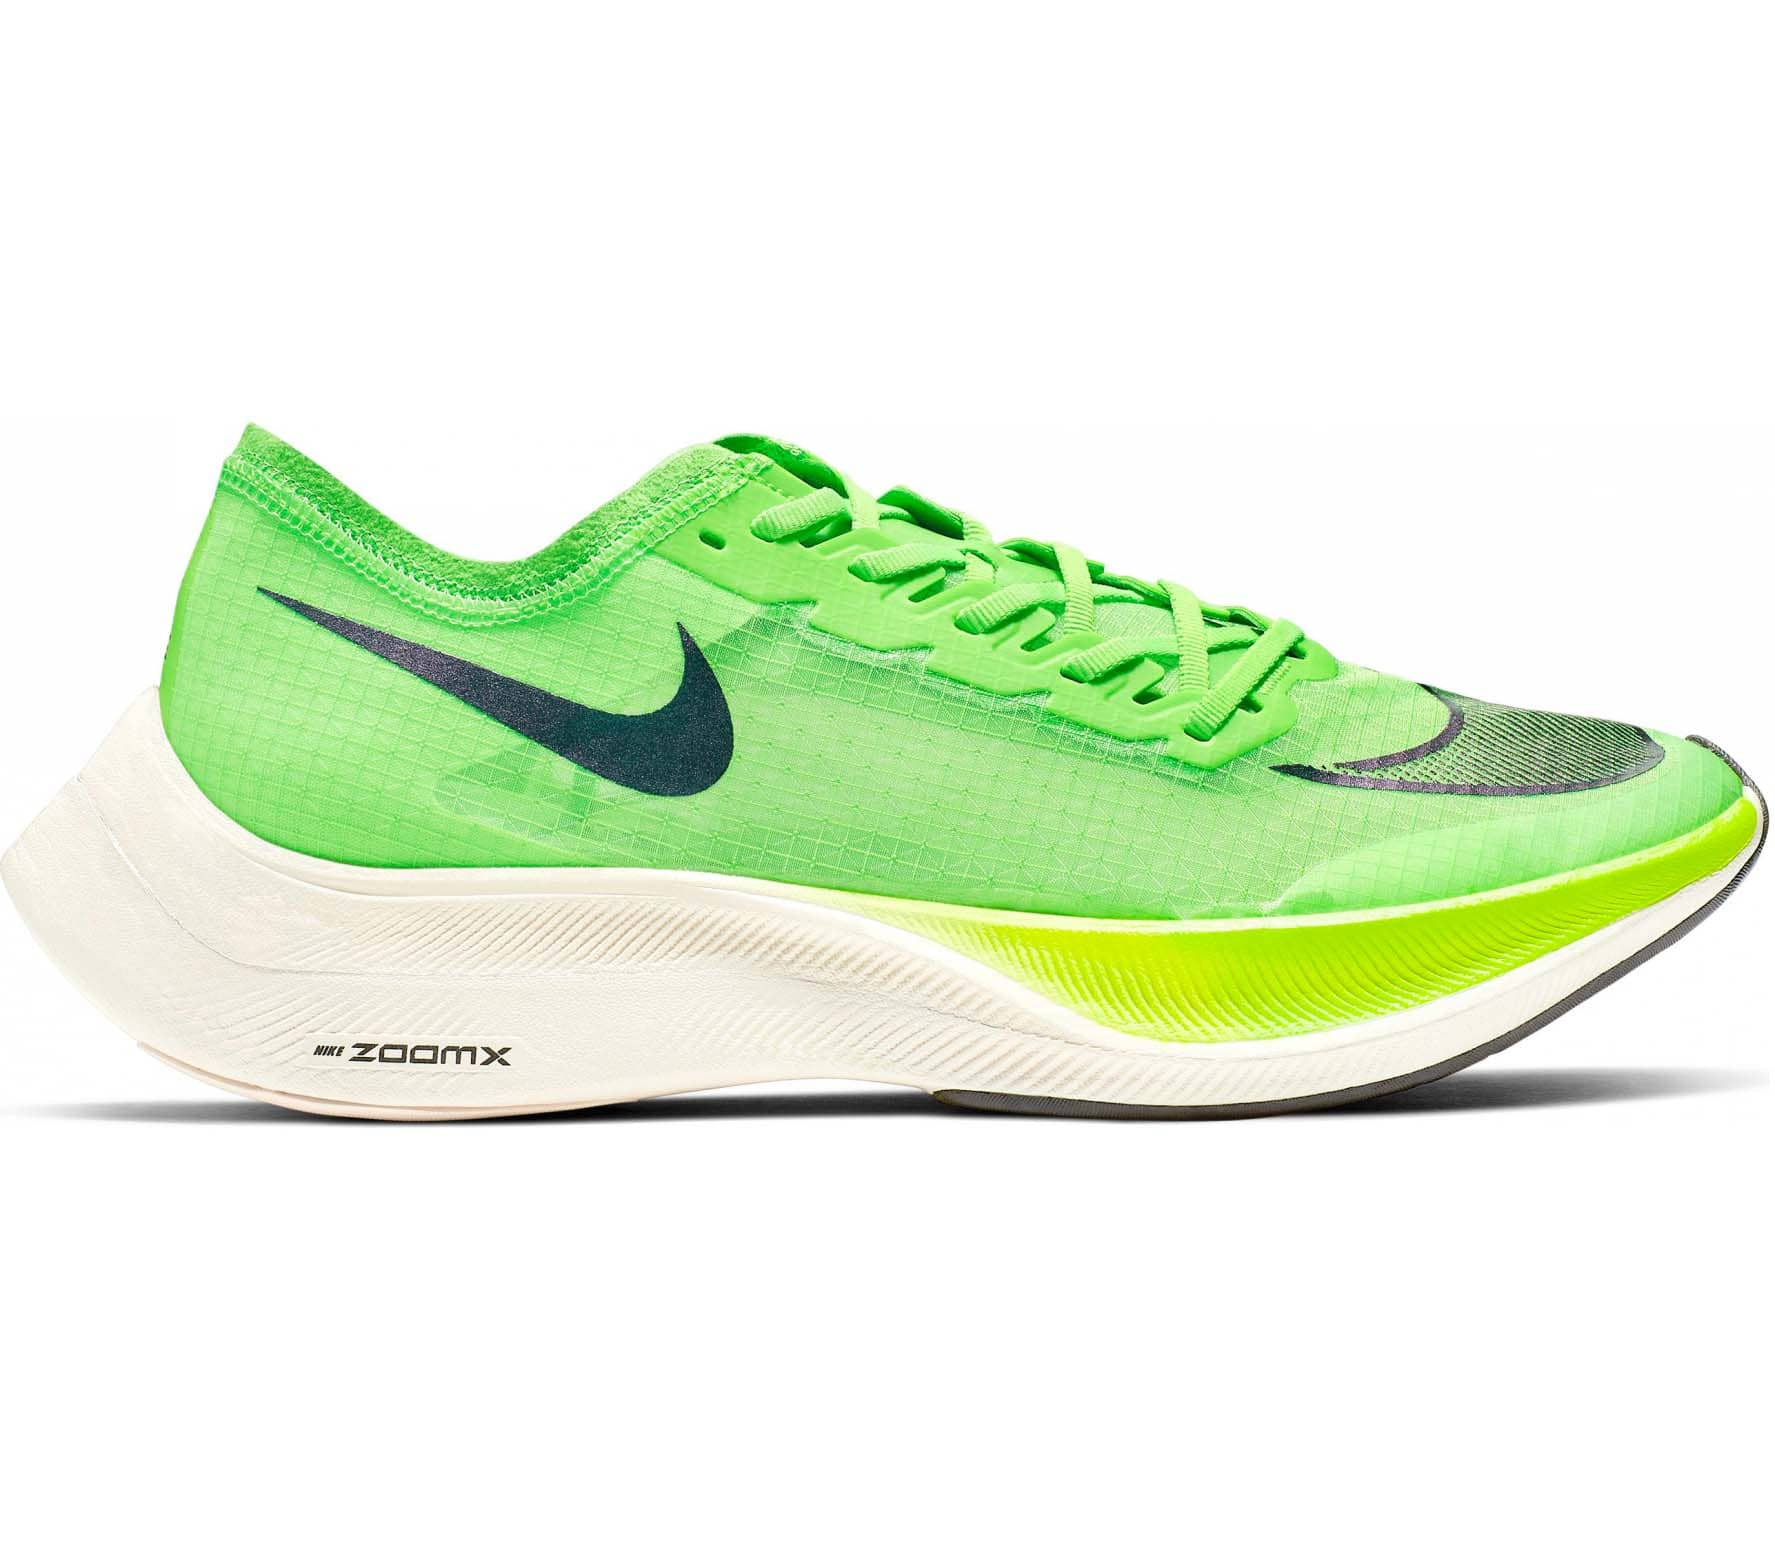 Nike ZoomX Vaporfly Next% Unisex Running Shoes  green